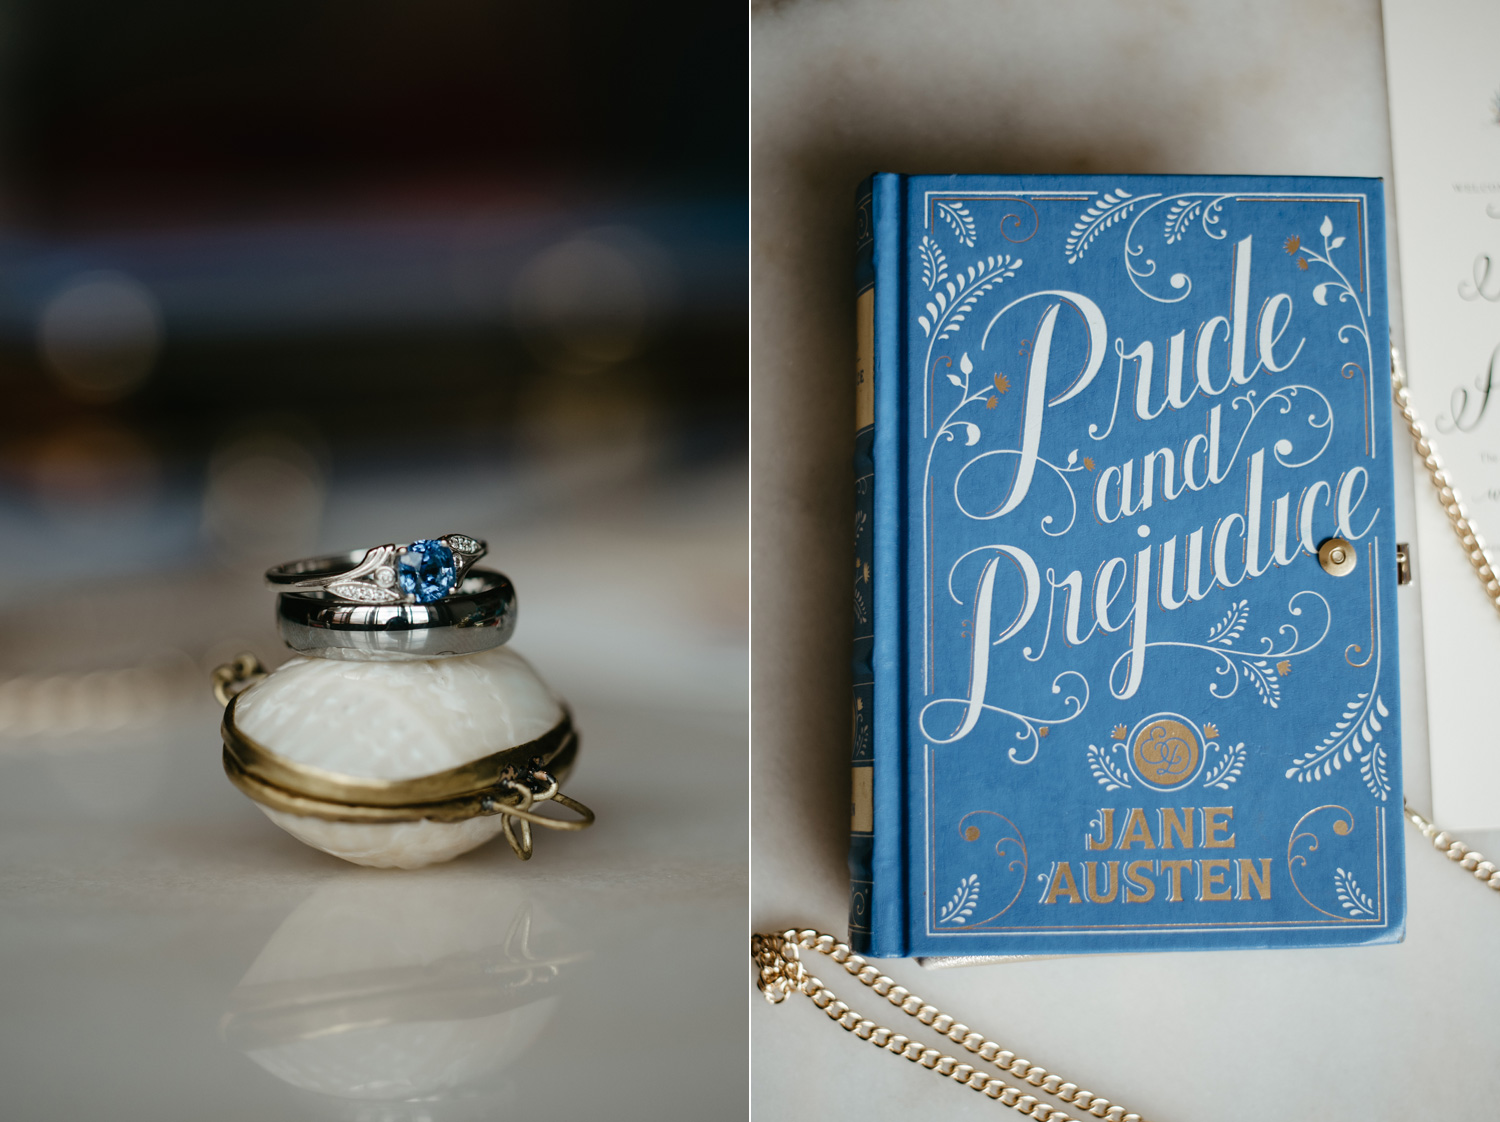 His and her wedding rings and a Pride and Prejudice purse